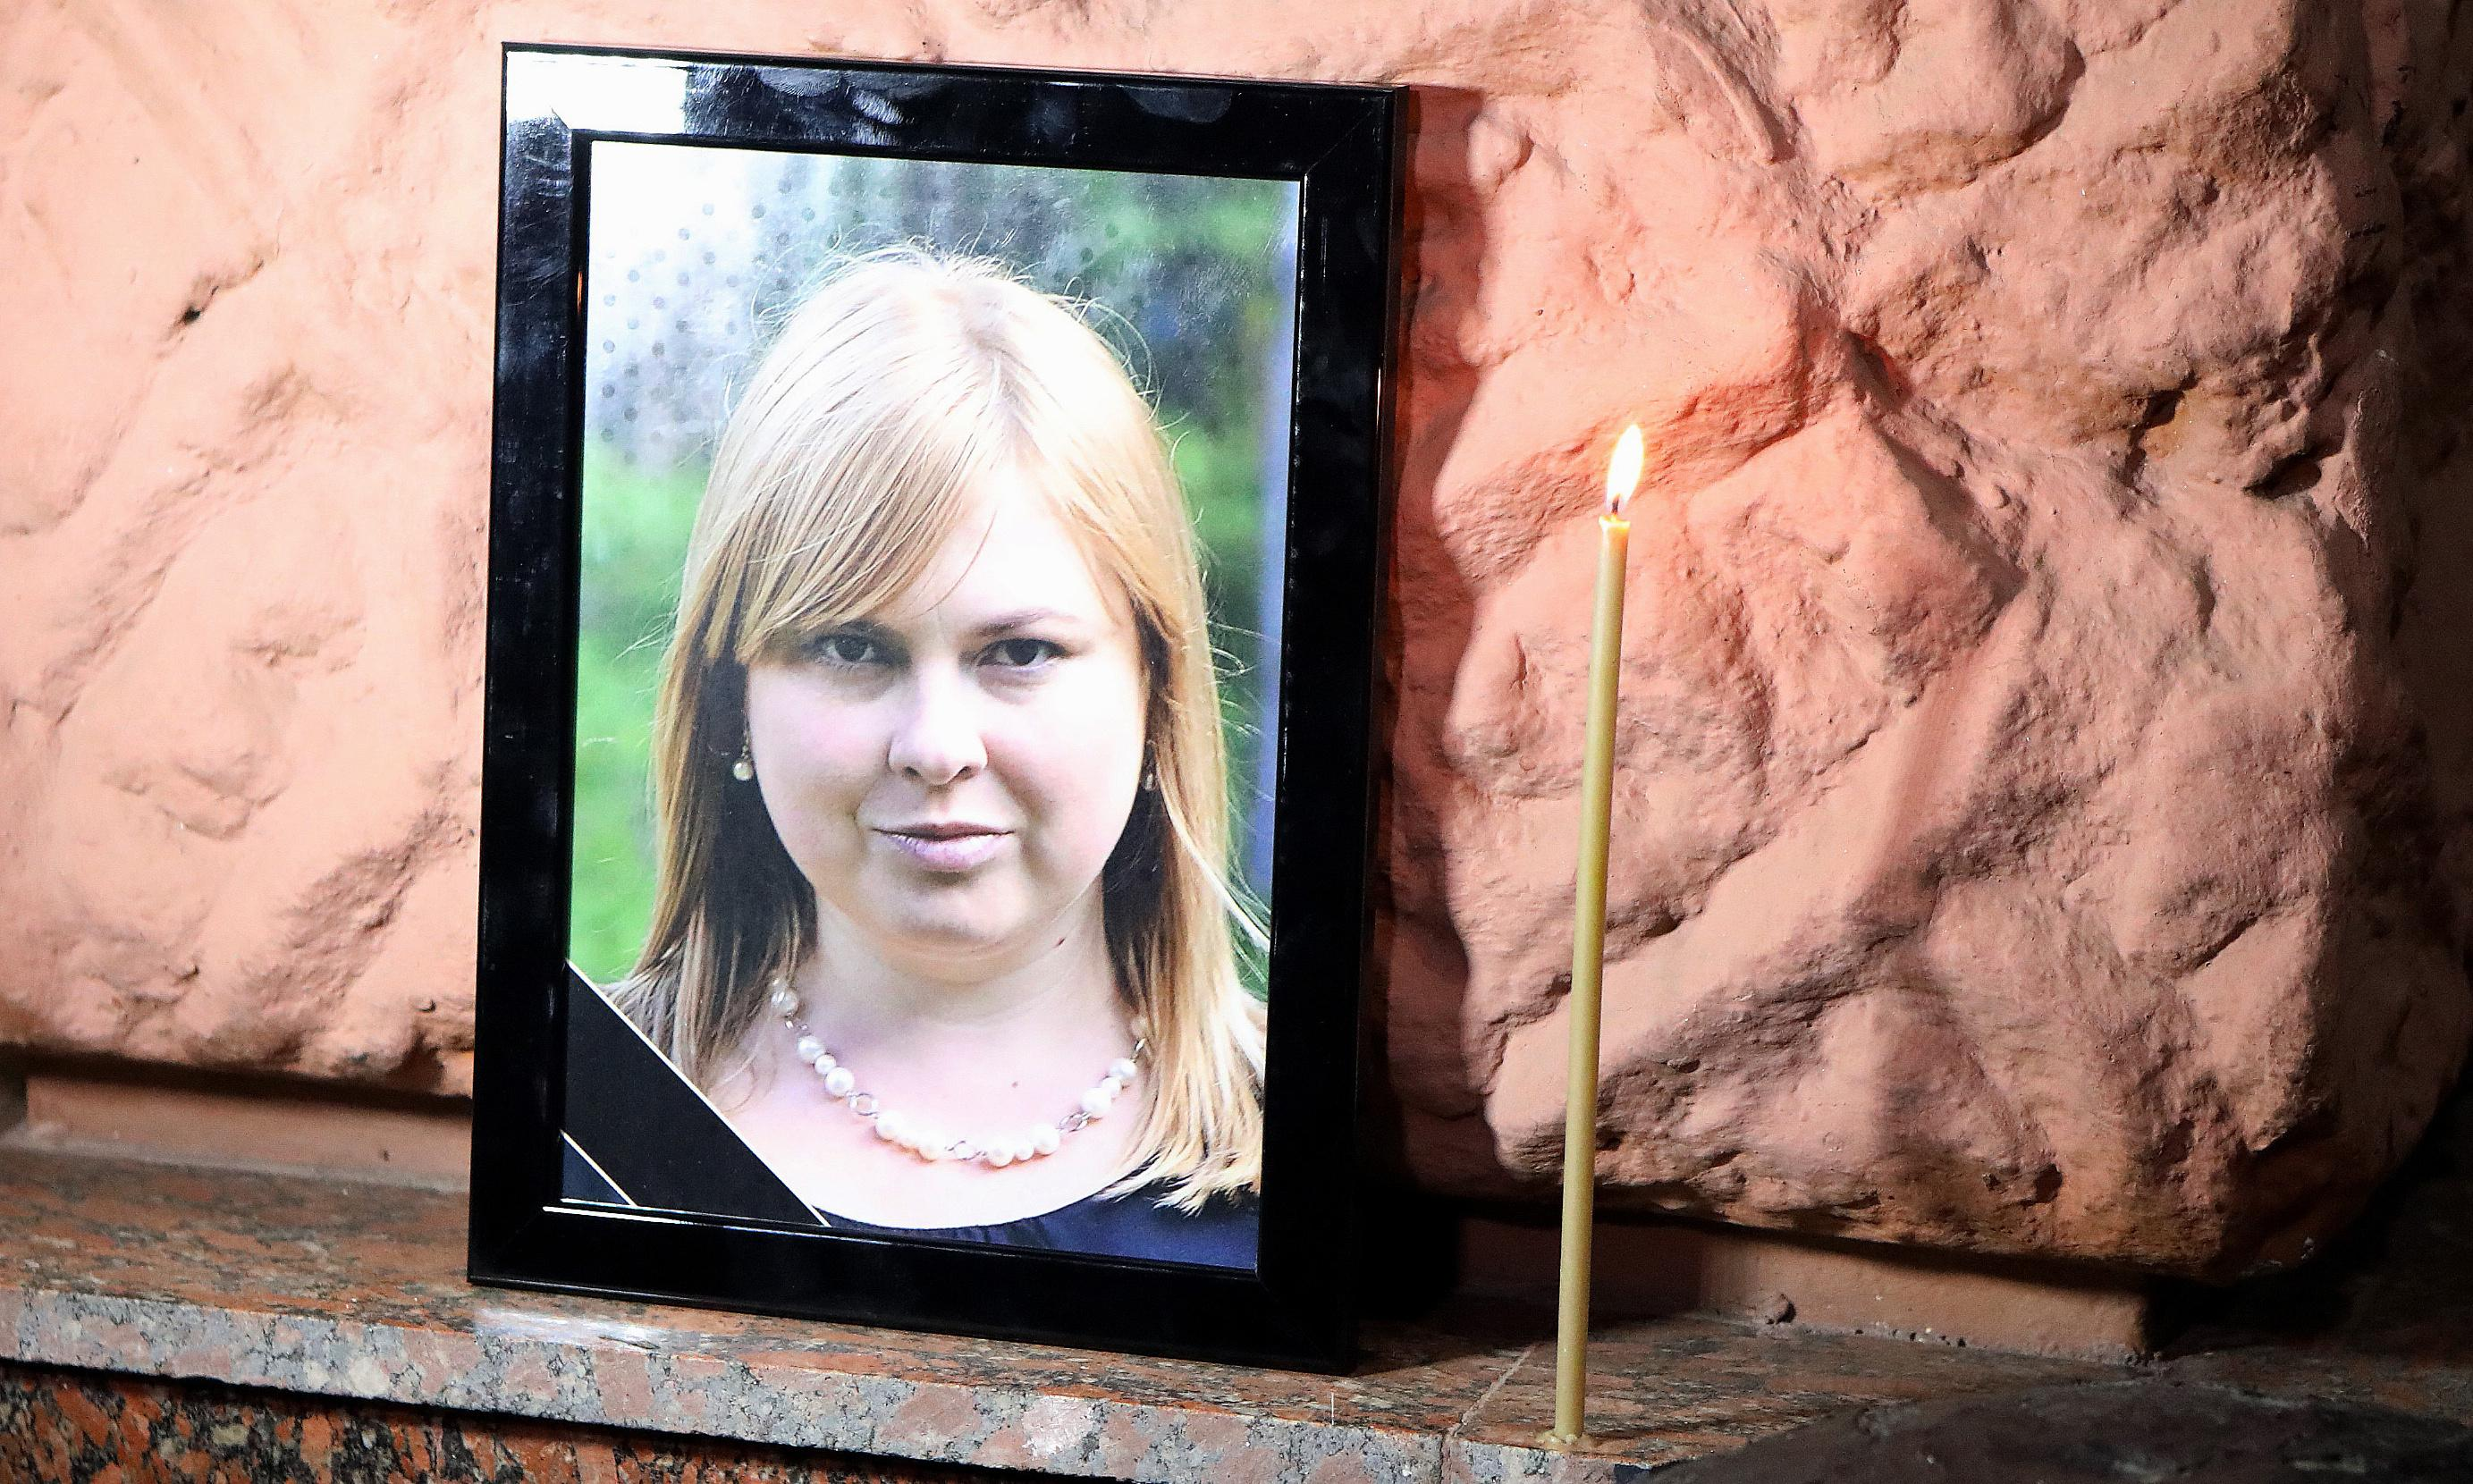 Ukraine activist Kateryna Handzyuk dies from acid attack